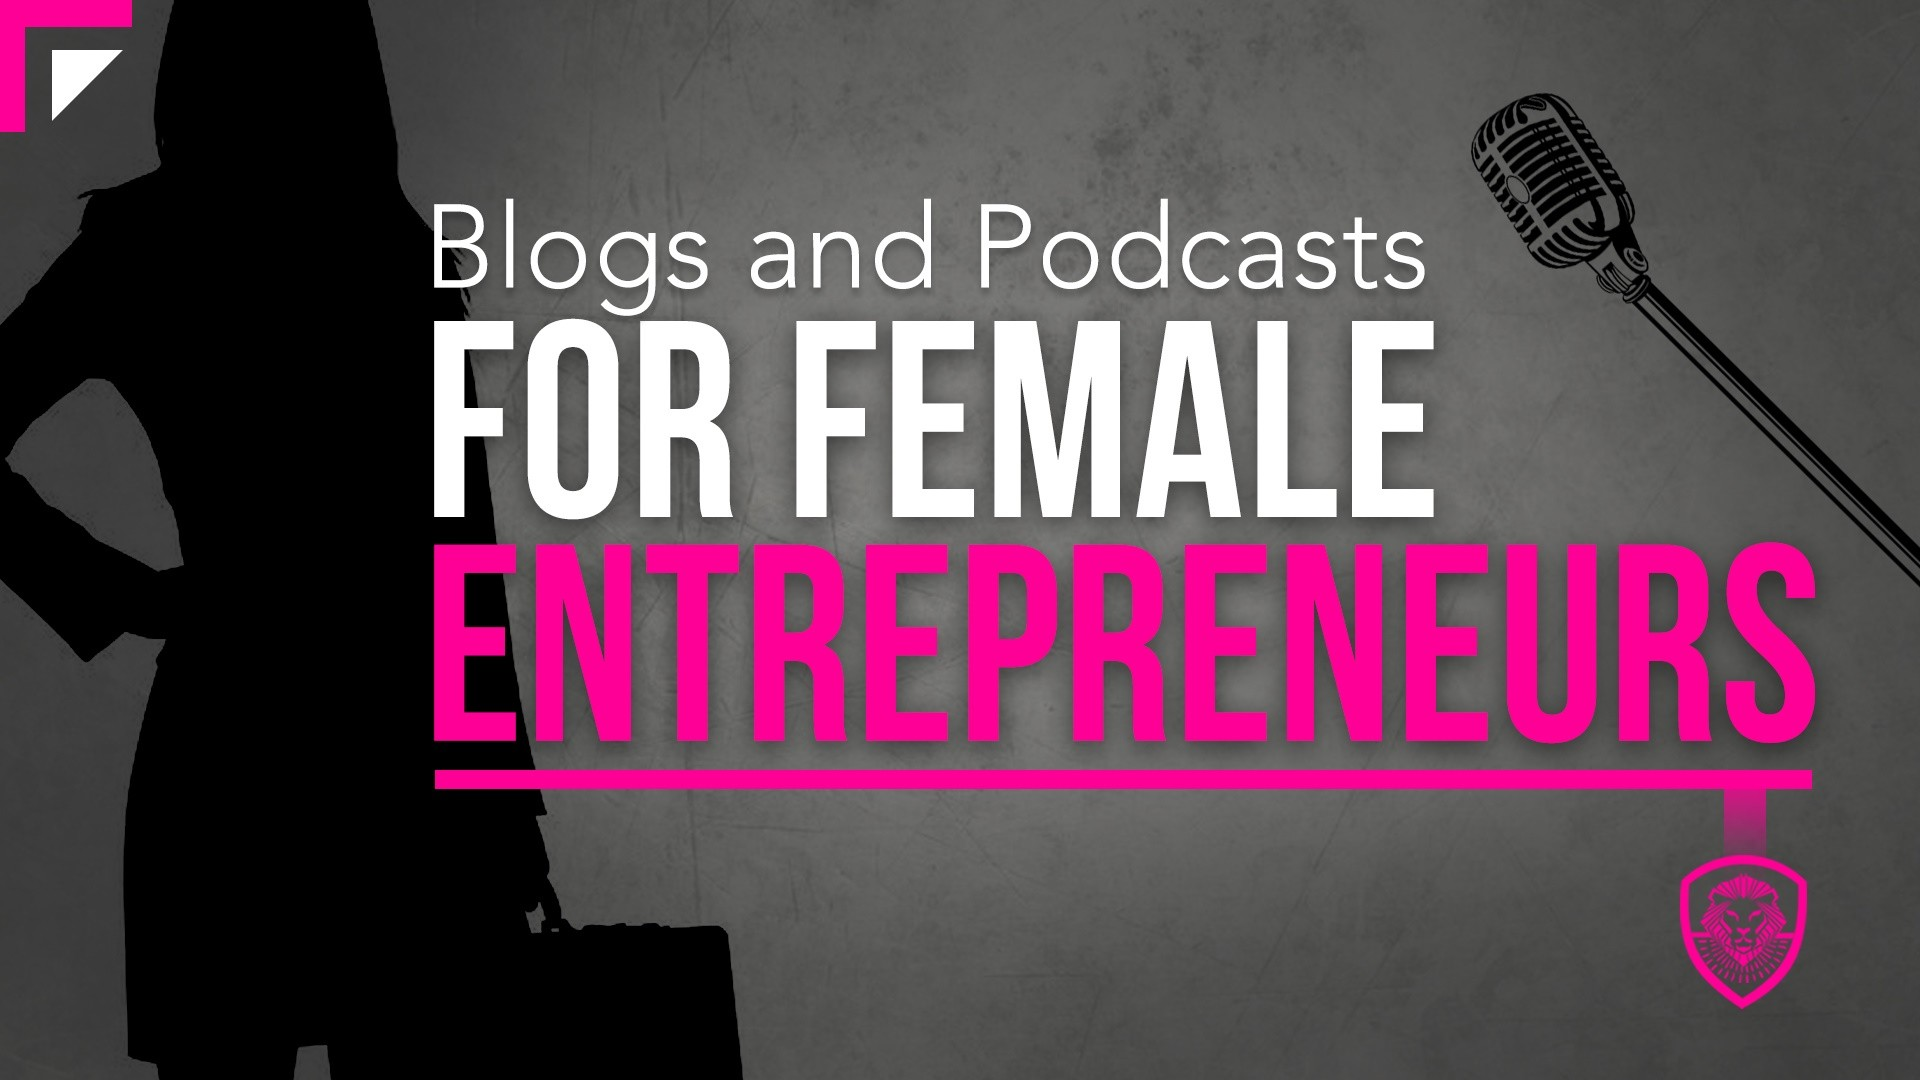 Blogs and Podcasts for Female Entrepreneurs